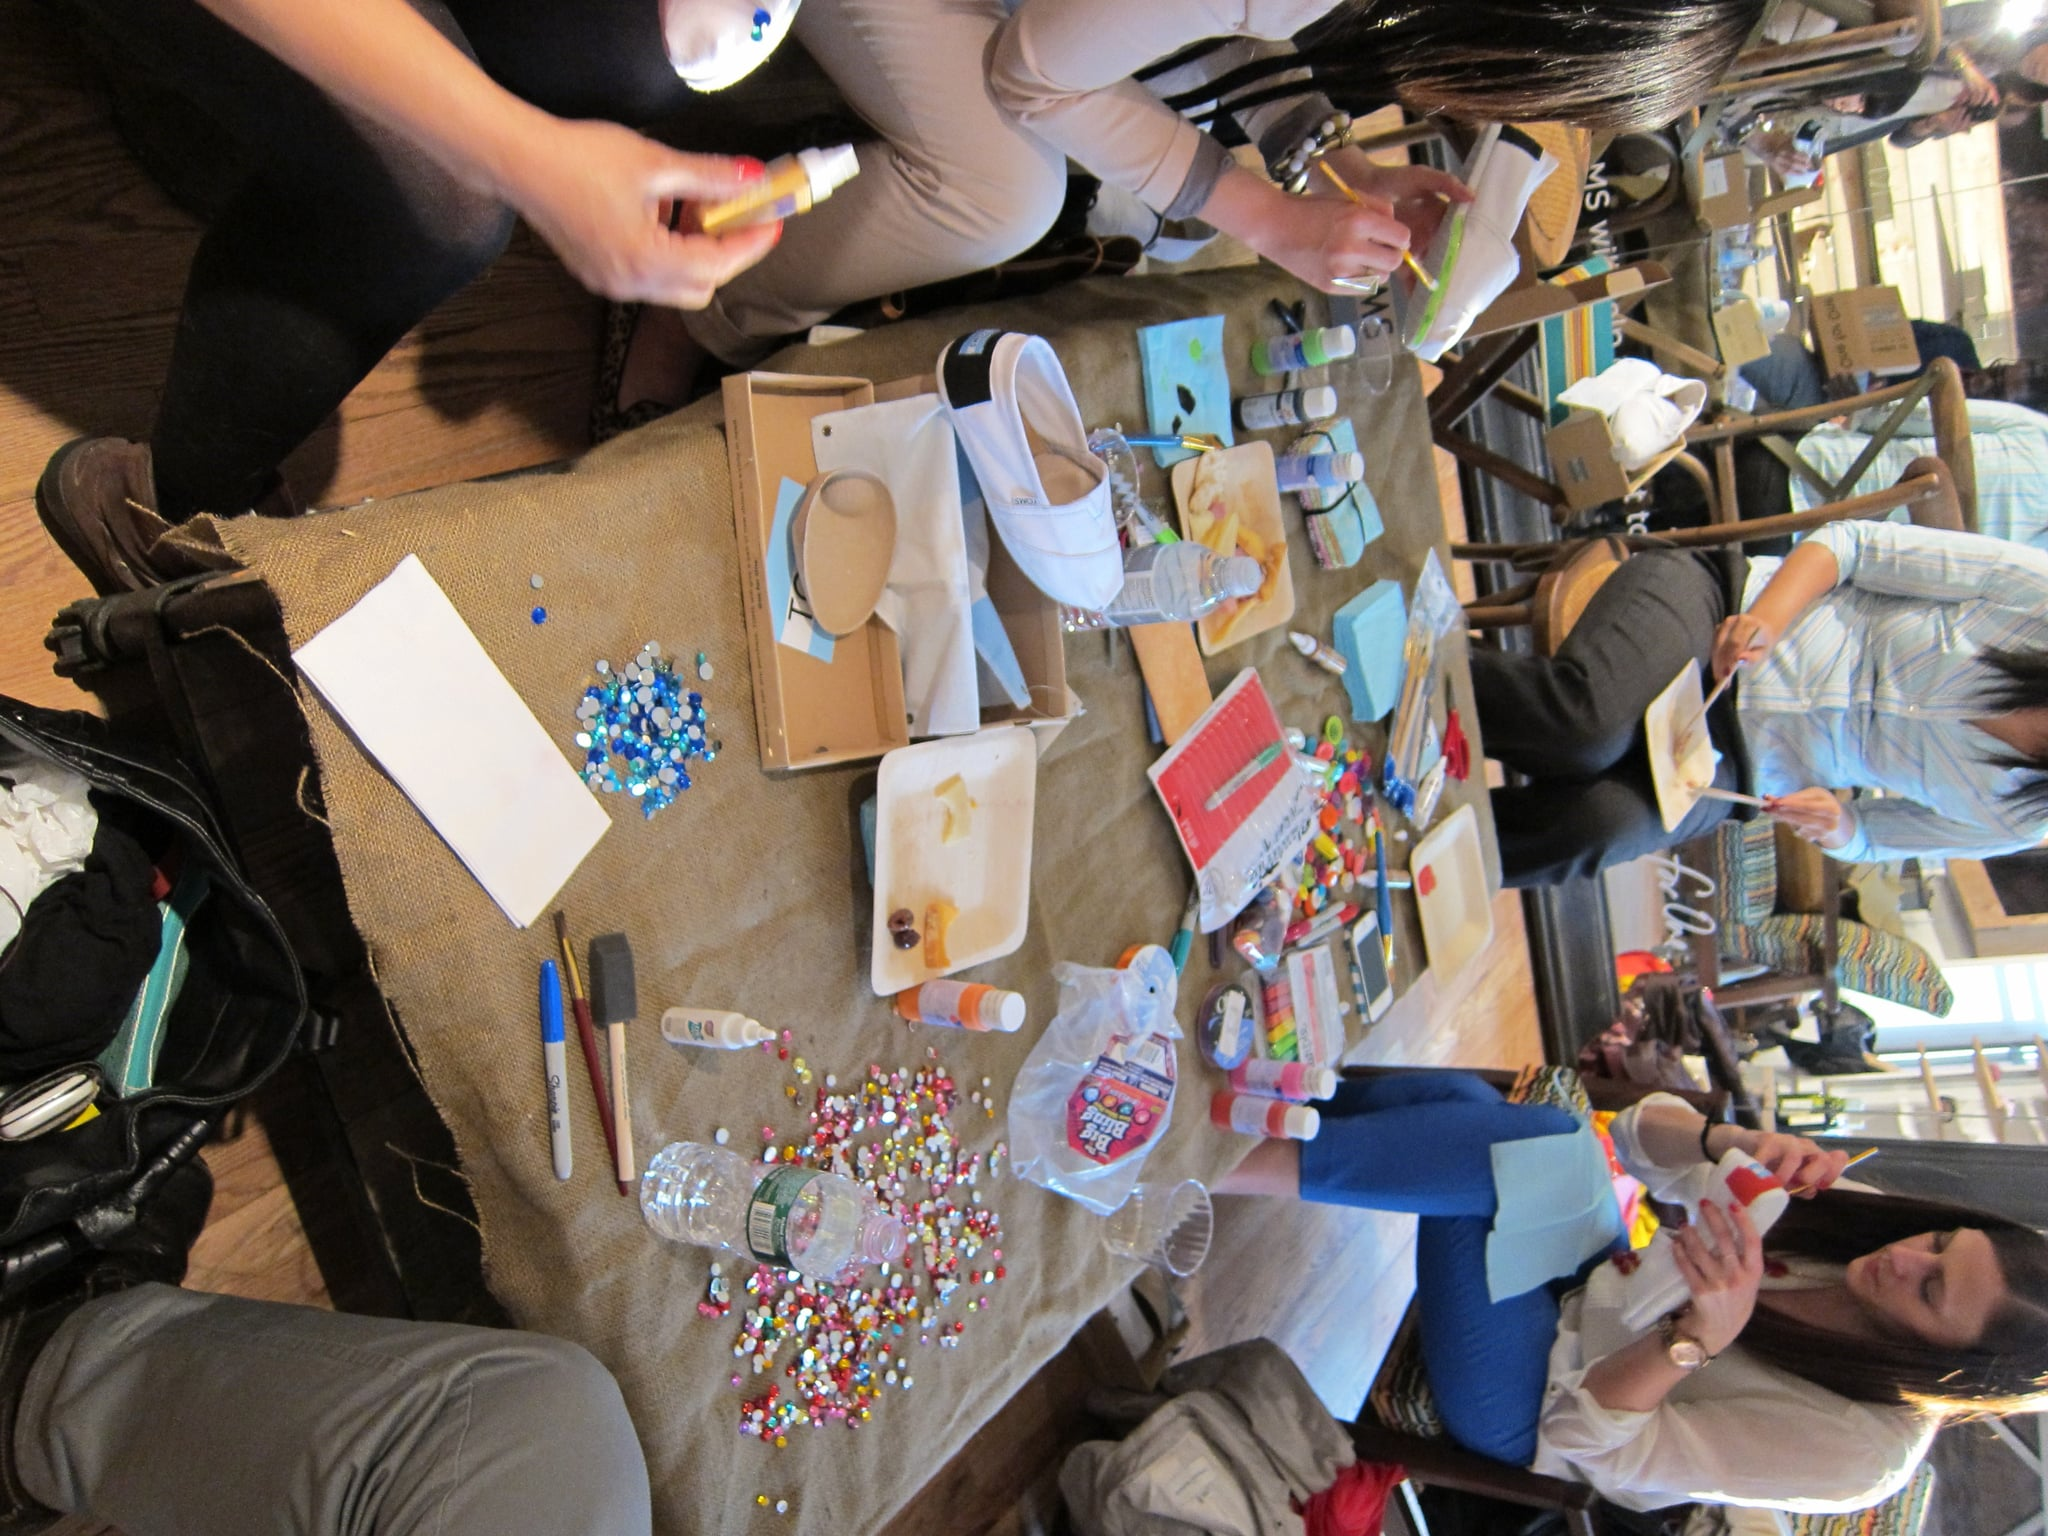 Spotted at TOMS NYC headquarters: lots of crafty ladies putting their personalized spin on a pair of classic TOMS shoes.